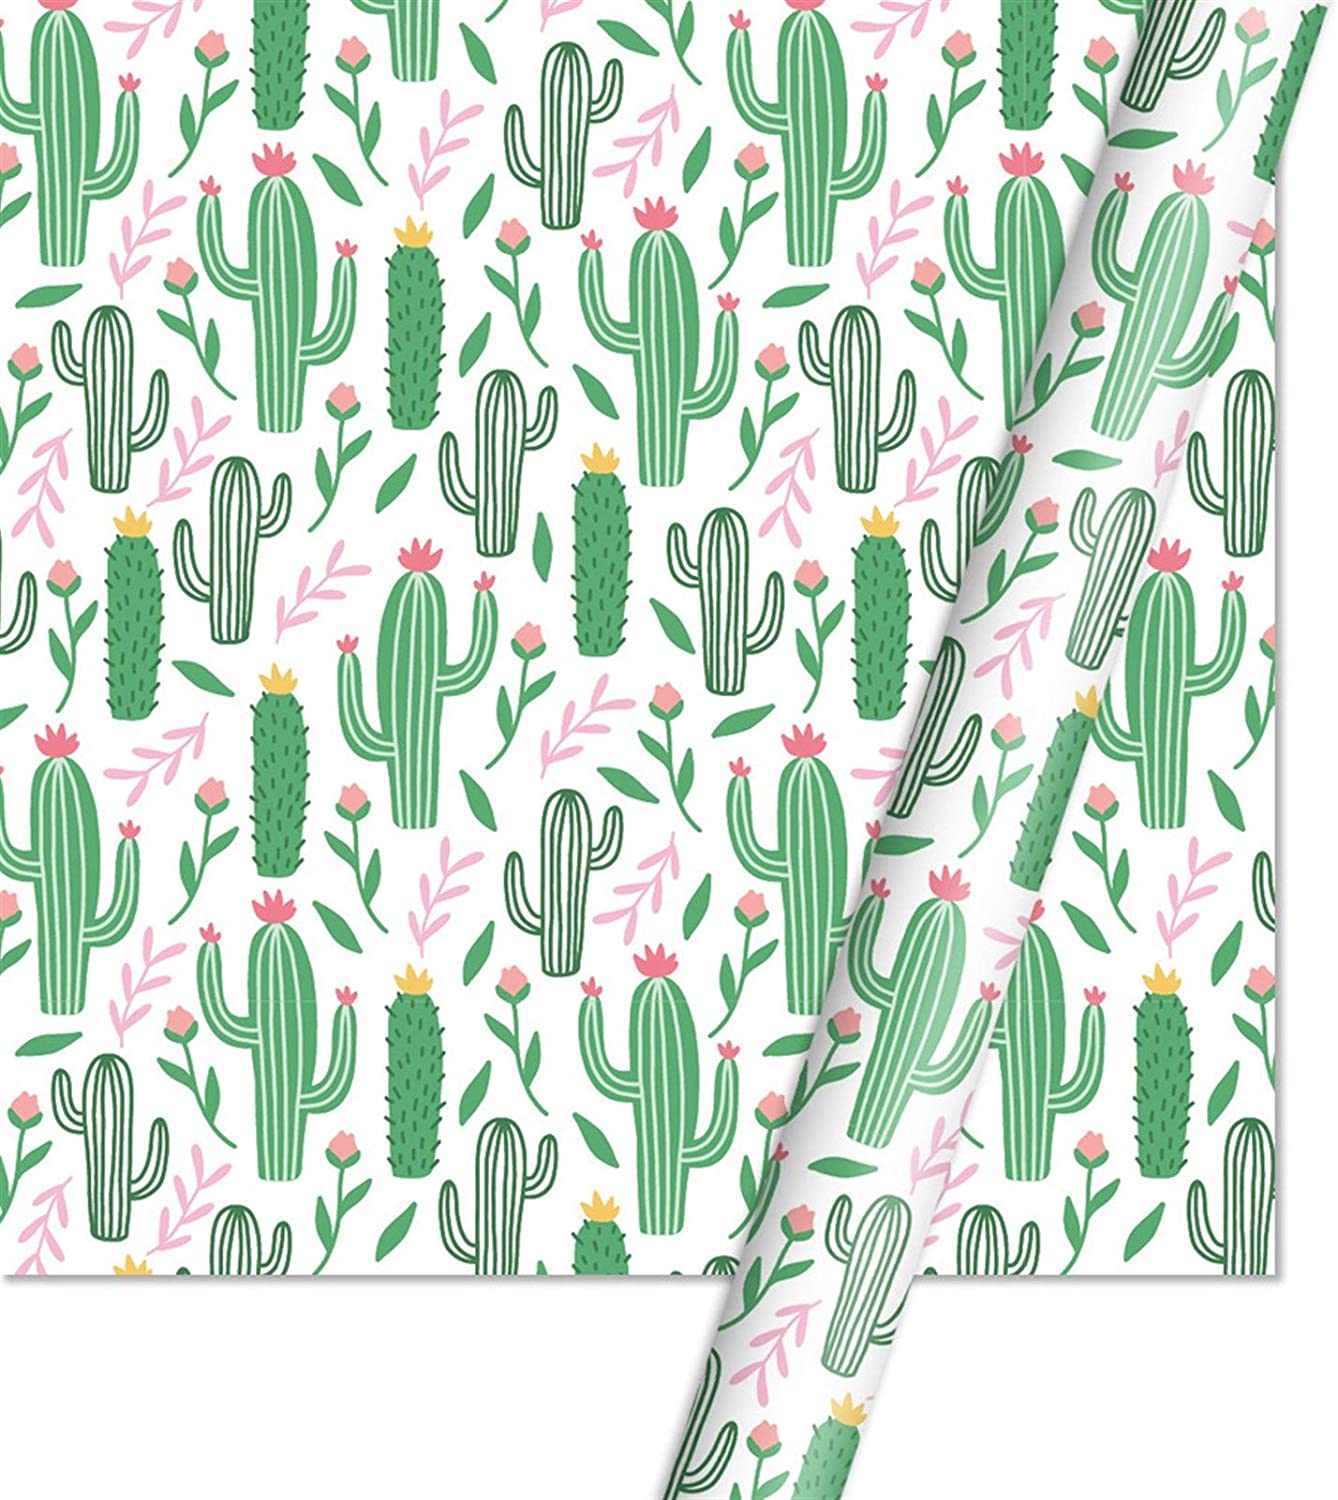 FXZ Wrapping Paper Packing Paper Wedding Gift Decoration Paper Alpaca Unicorn Cactus Carton 5070cm (Color : 4)